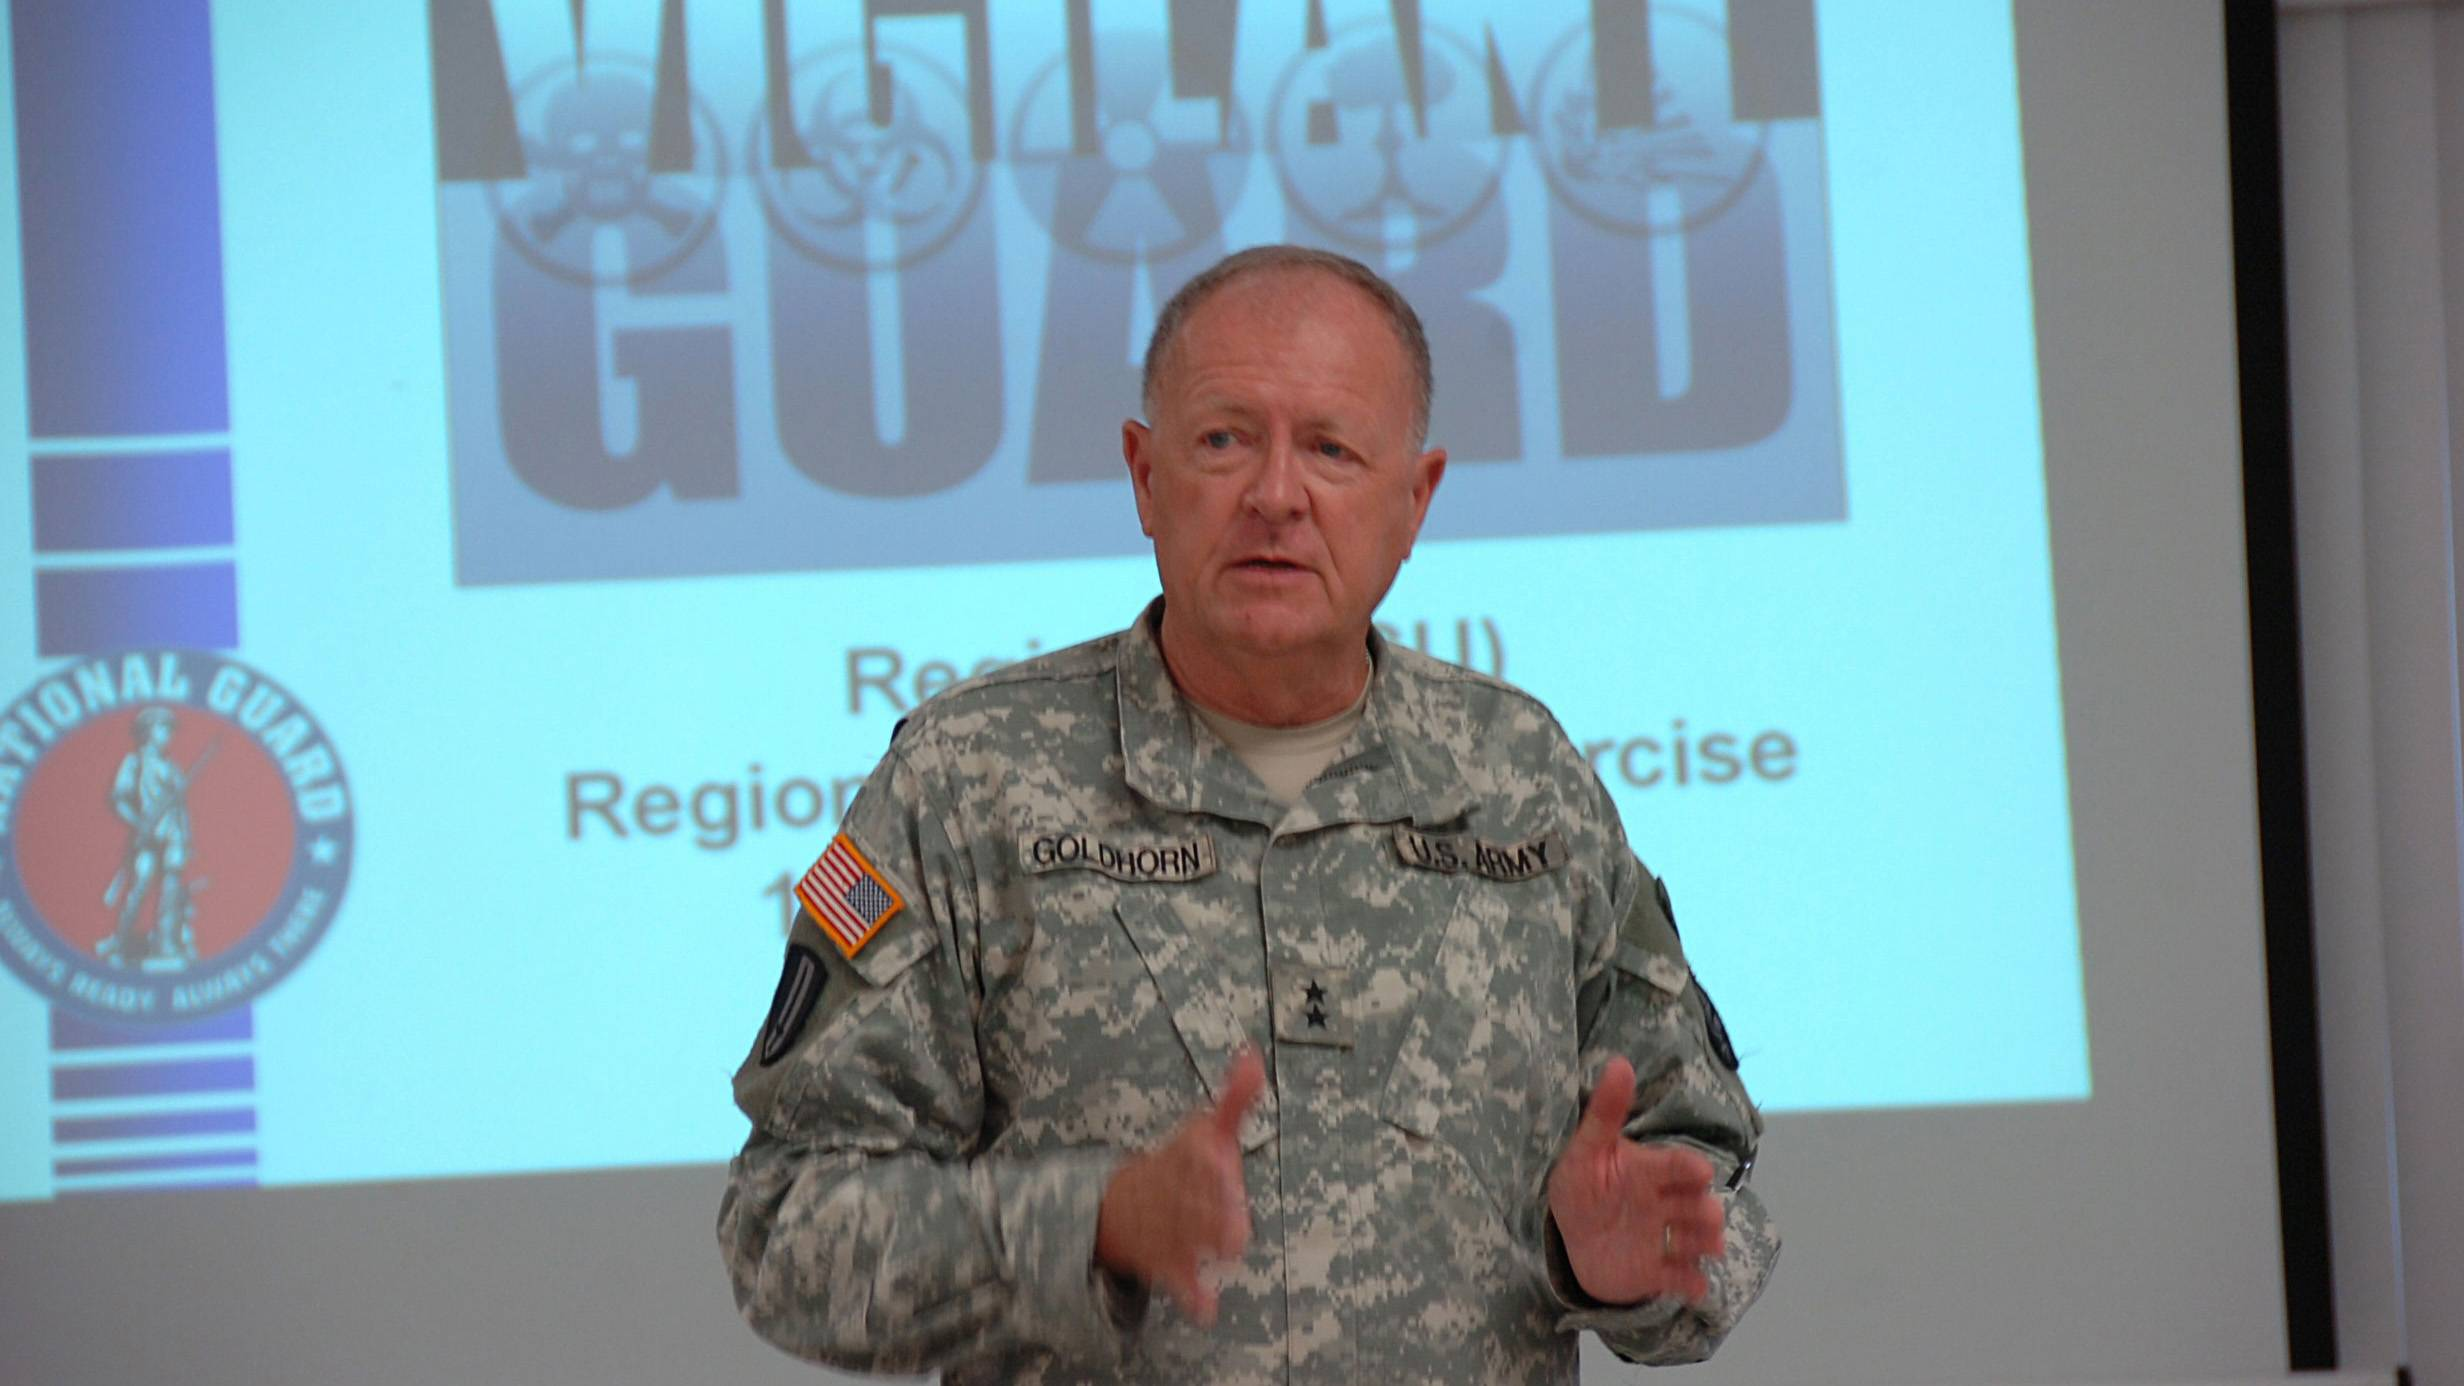 Major General Don Goldhorn